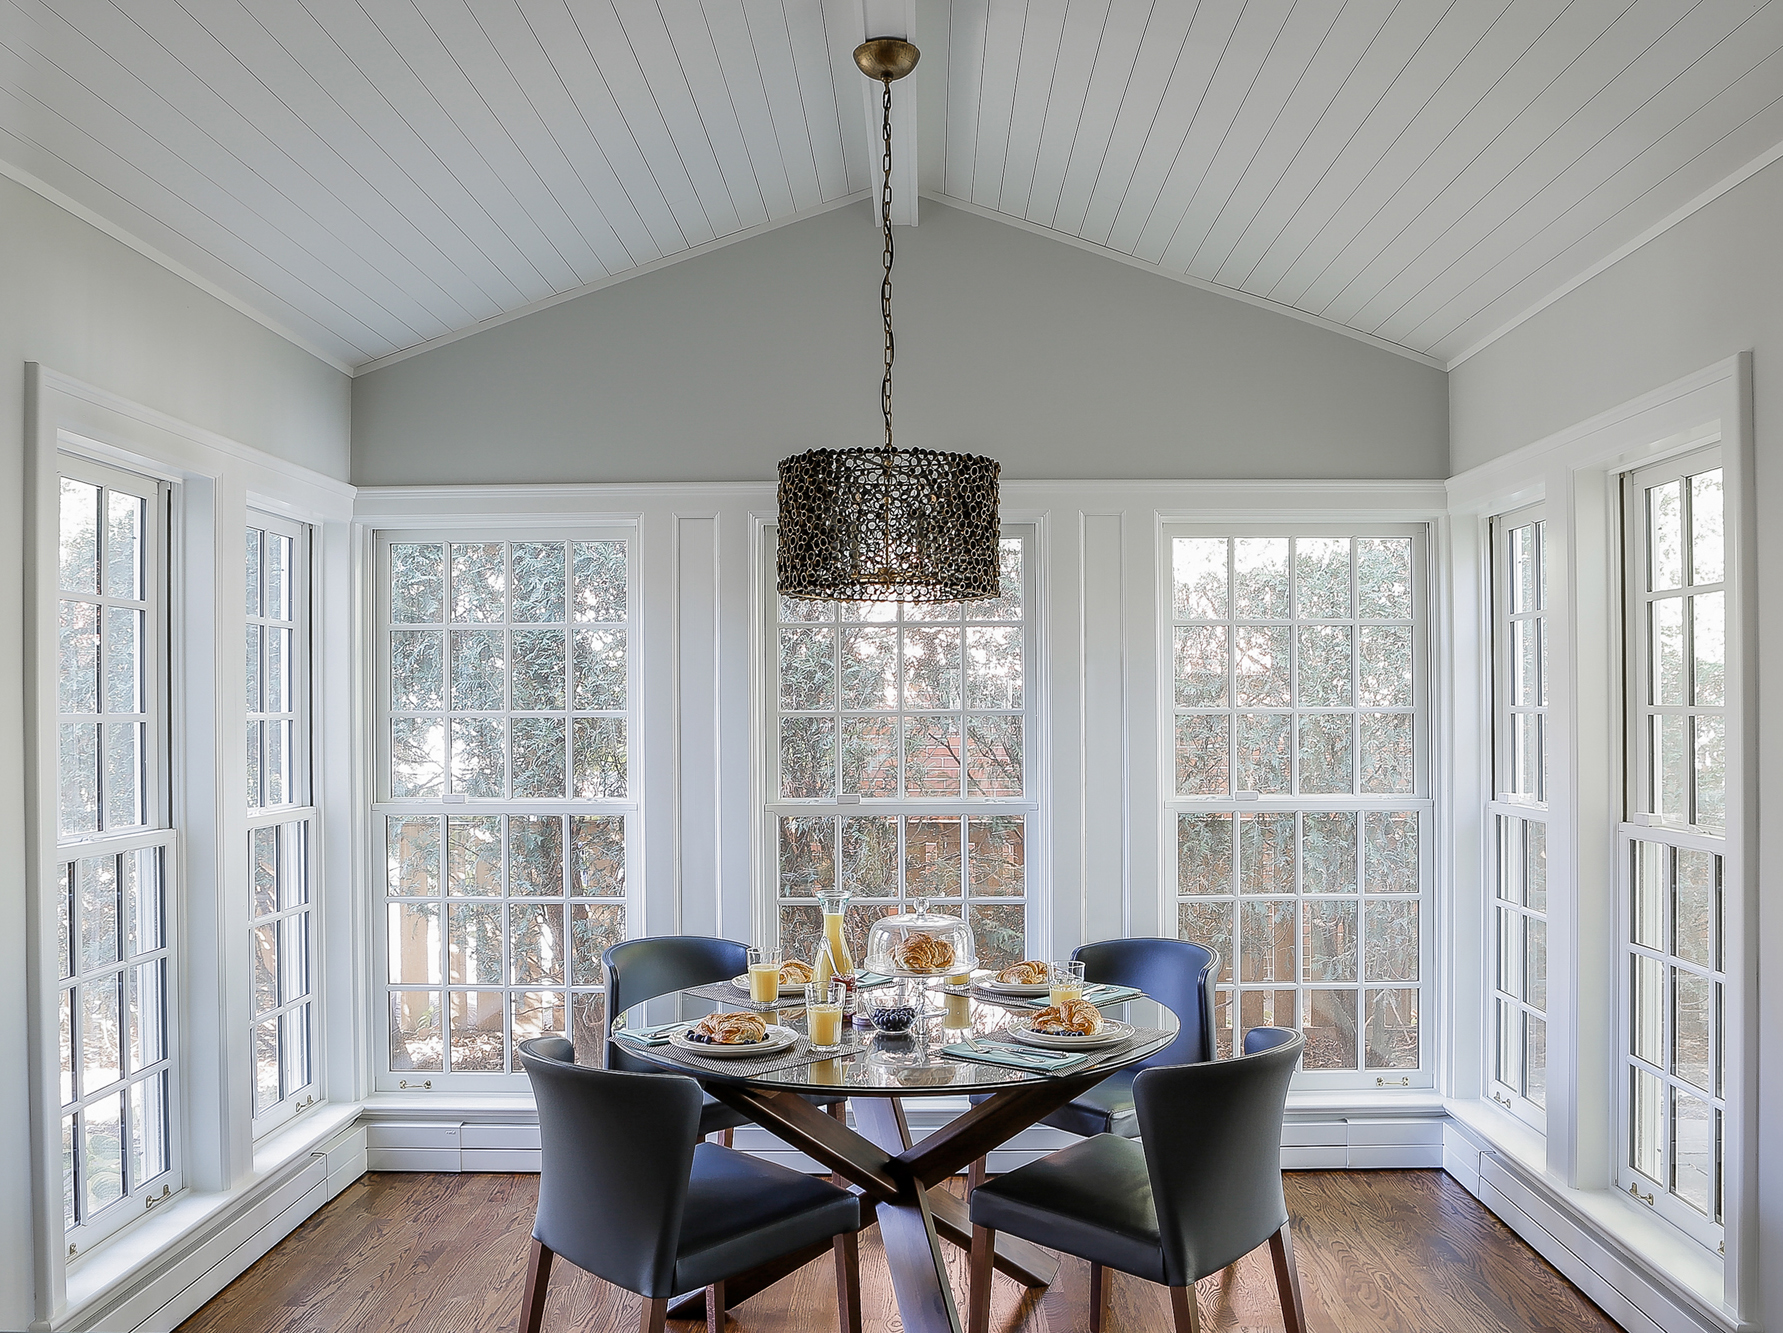 Breakfast nook Edited2.jpg